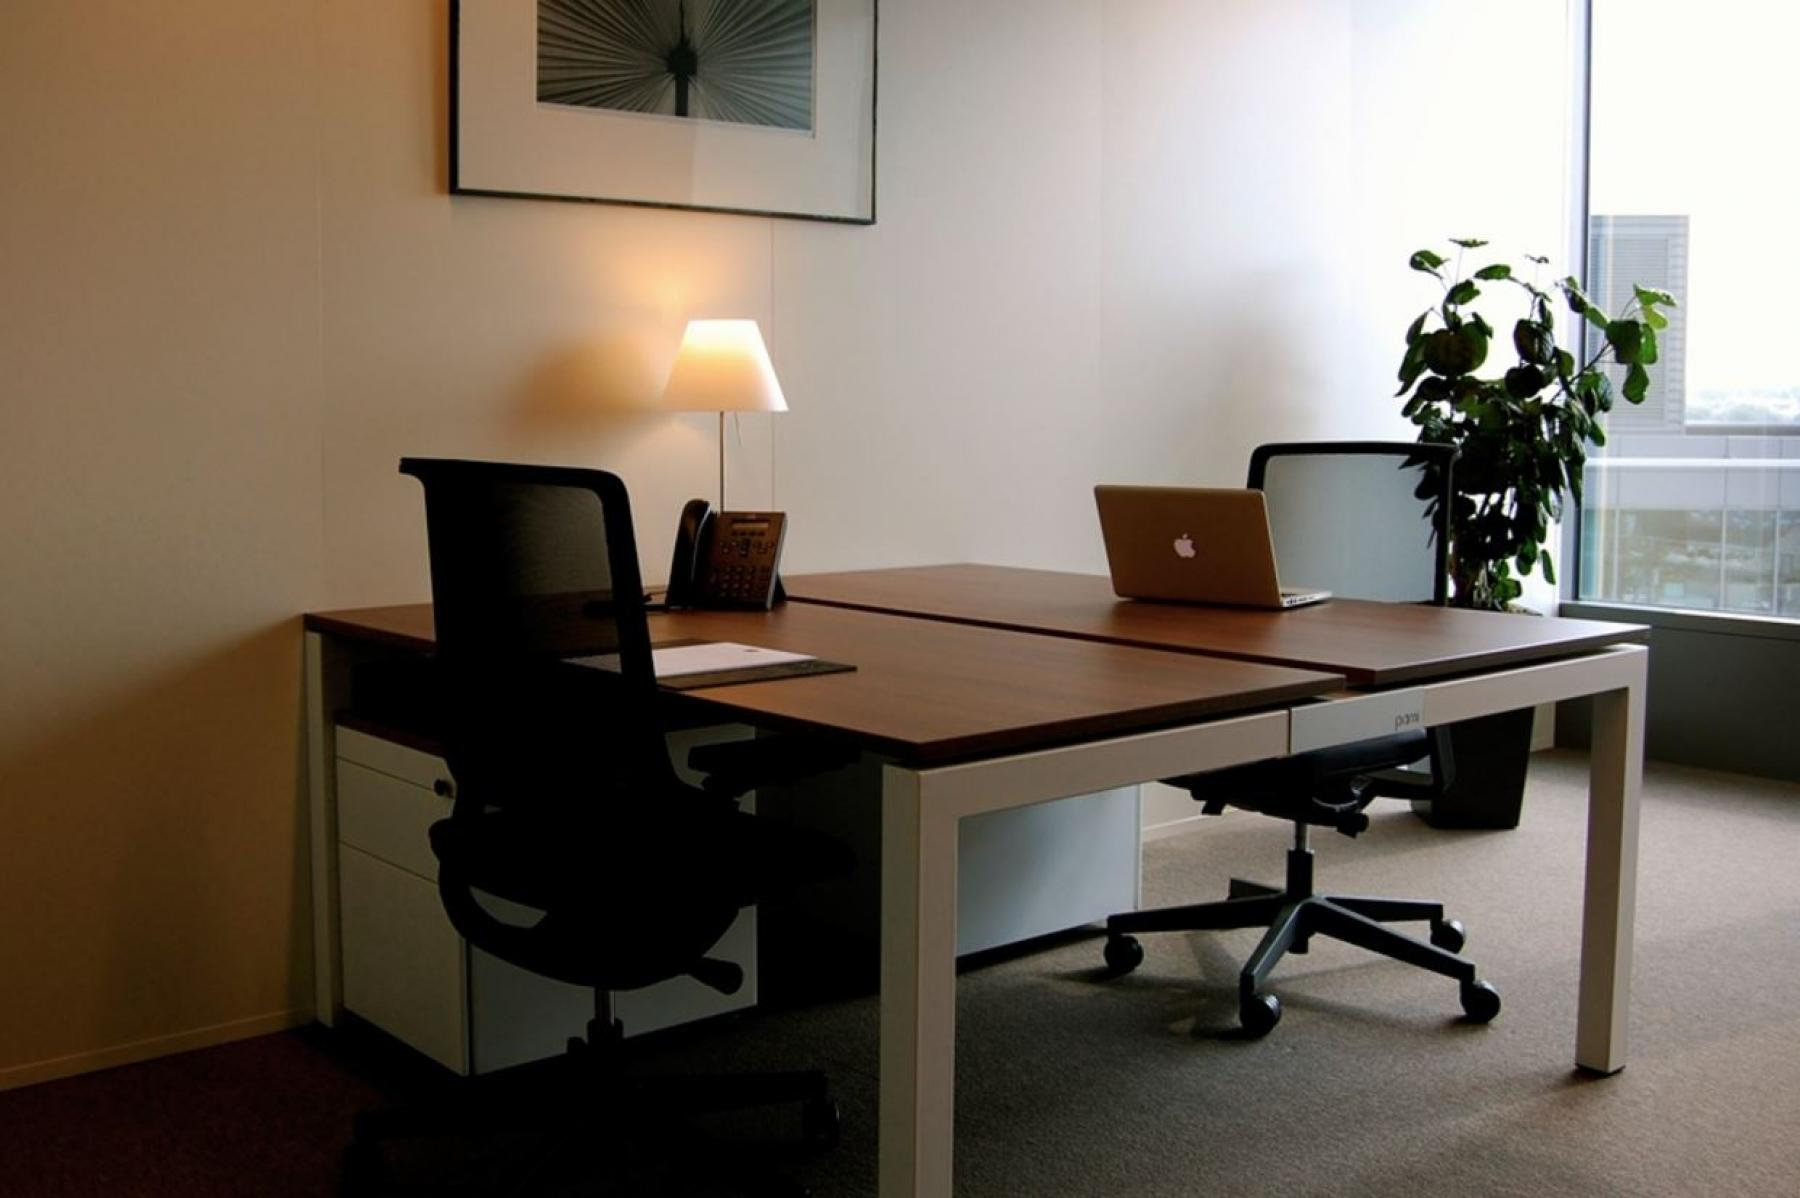 overview of the office